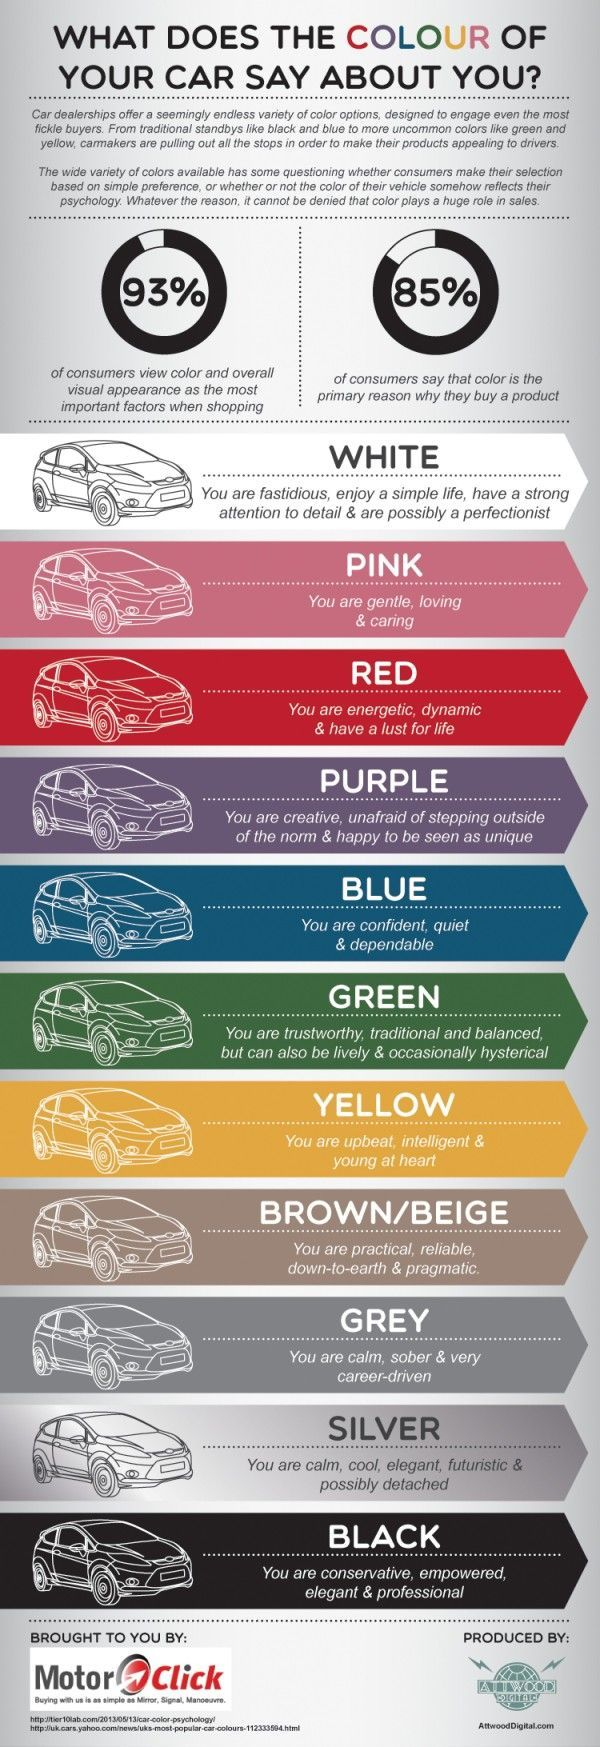 What Does the Colour of Your Car Say About You? Infographic | Best Infographics Design